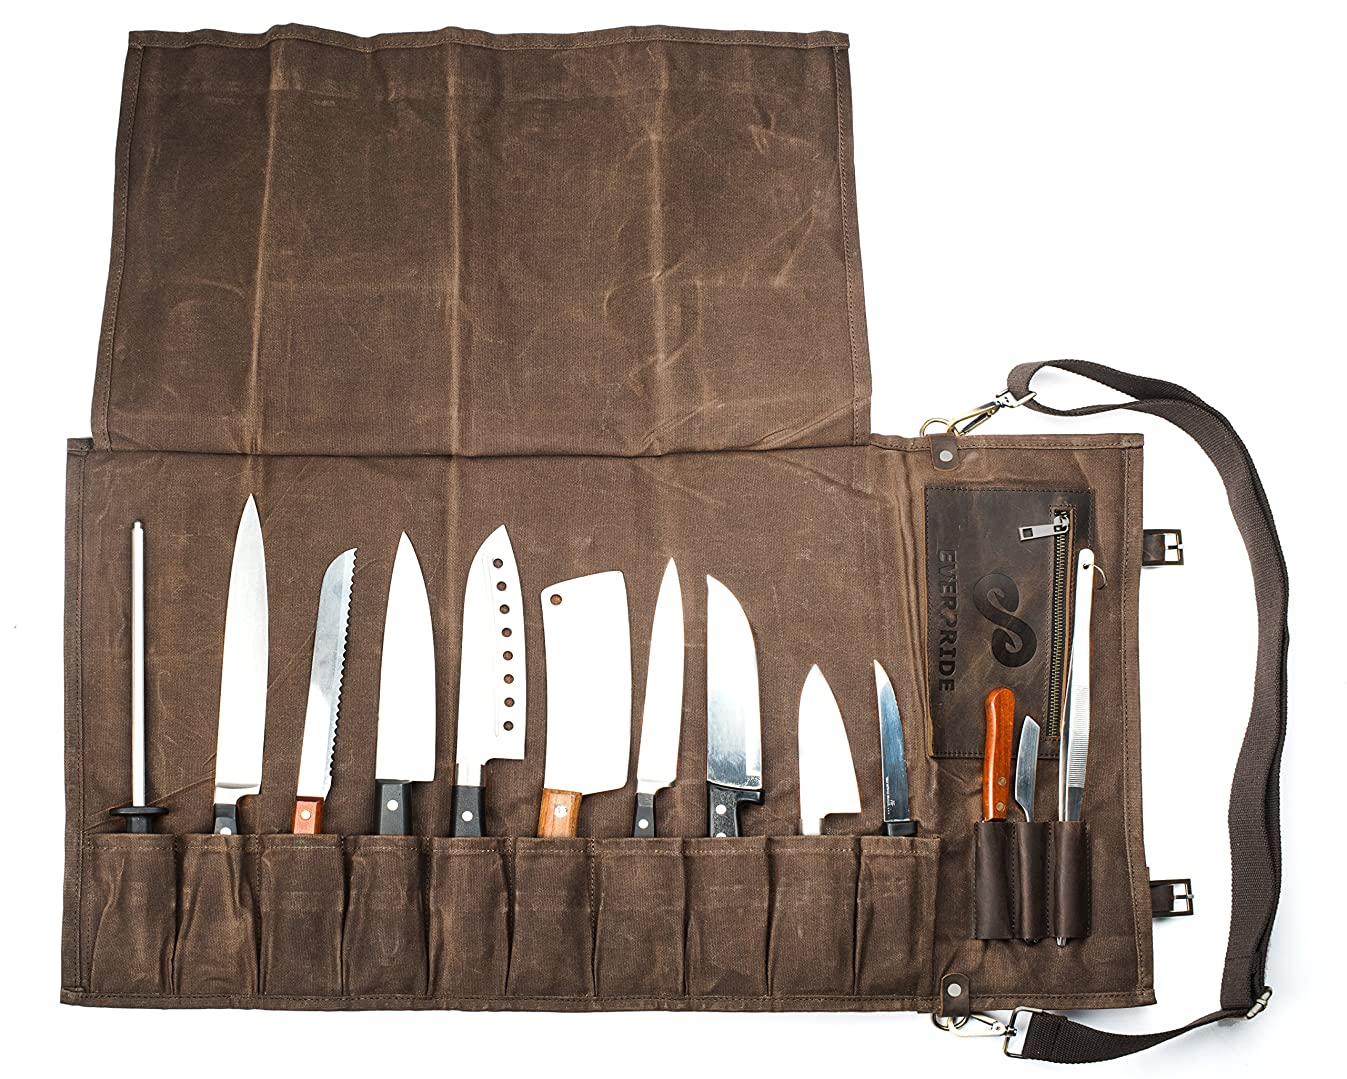 Chef Knife Roll Bag (13 Slots)   Stores 10 Knives, 3 Kitchen Utensils PLUS a Zipper   Durable Waxed Canvas Knife Carrier   Easily Carried by Shoulder Strap For Professional Chefs   Knives Not Included